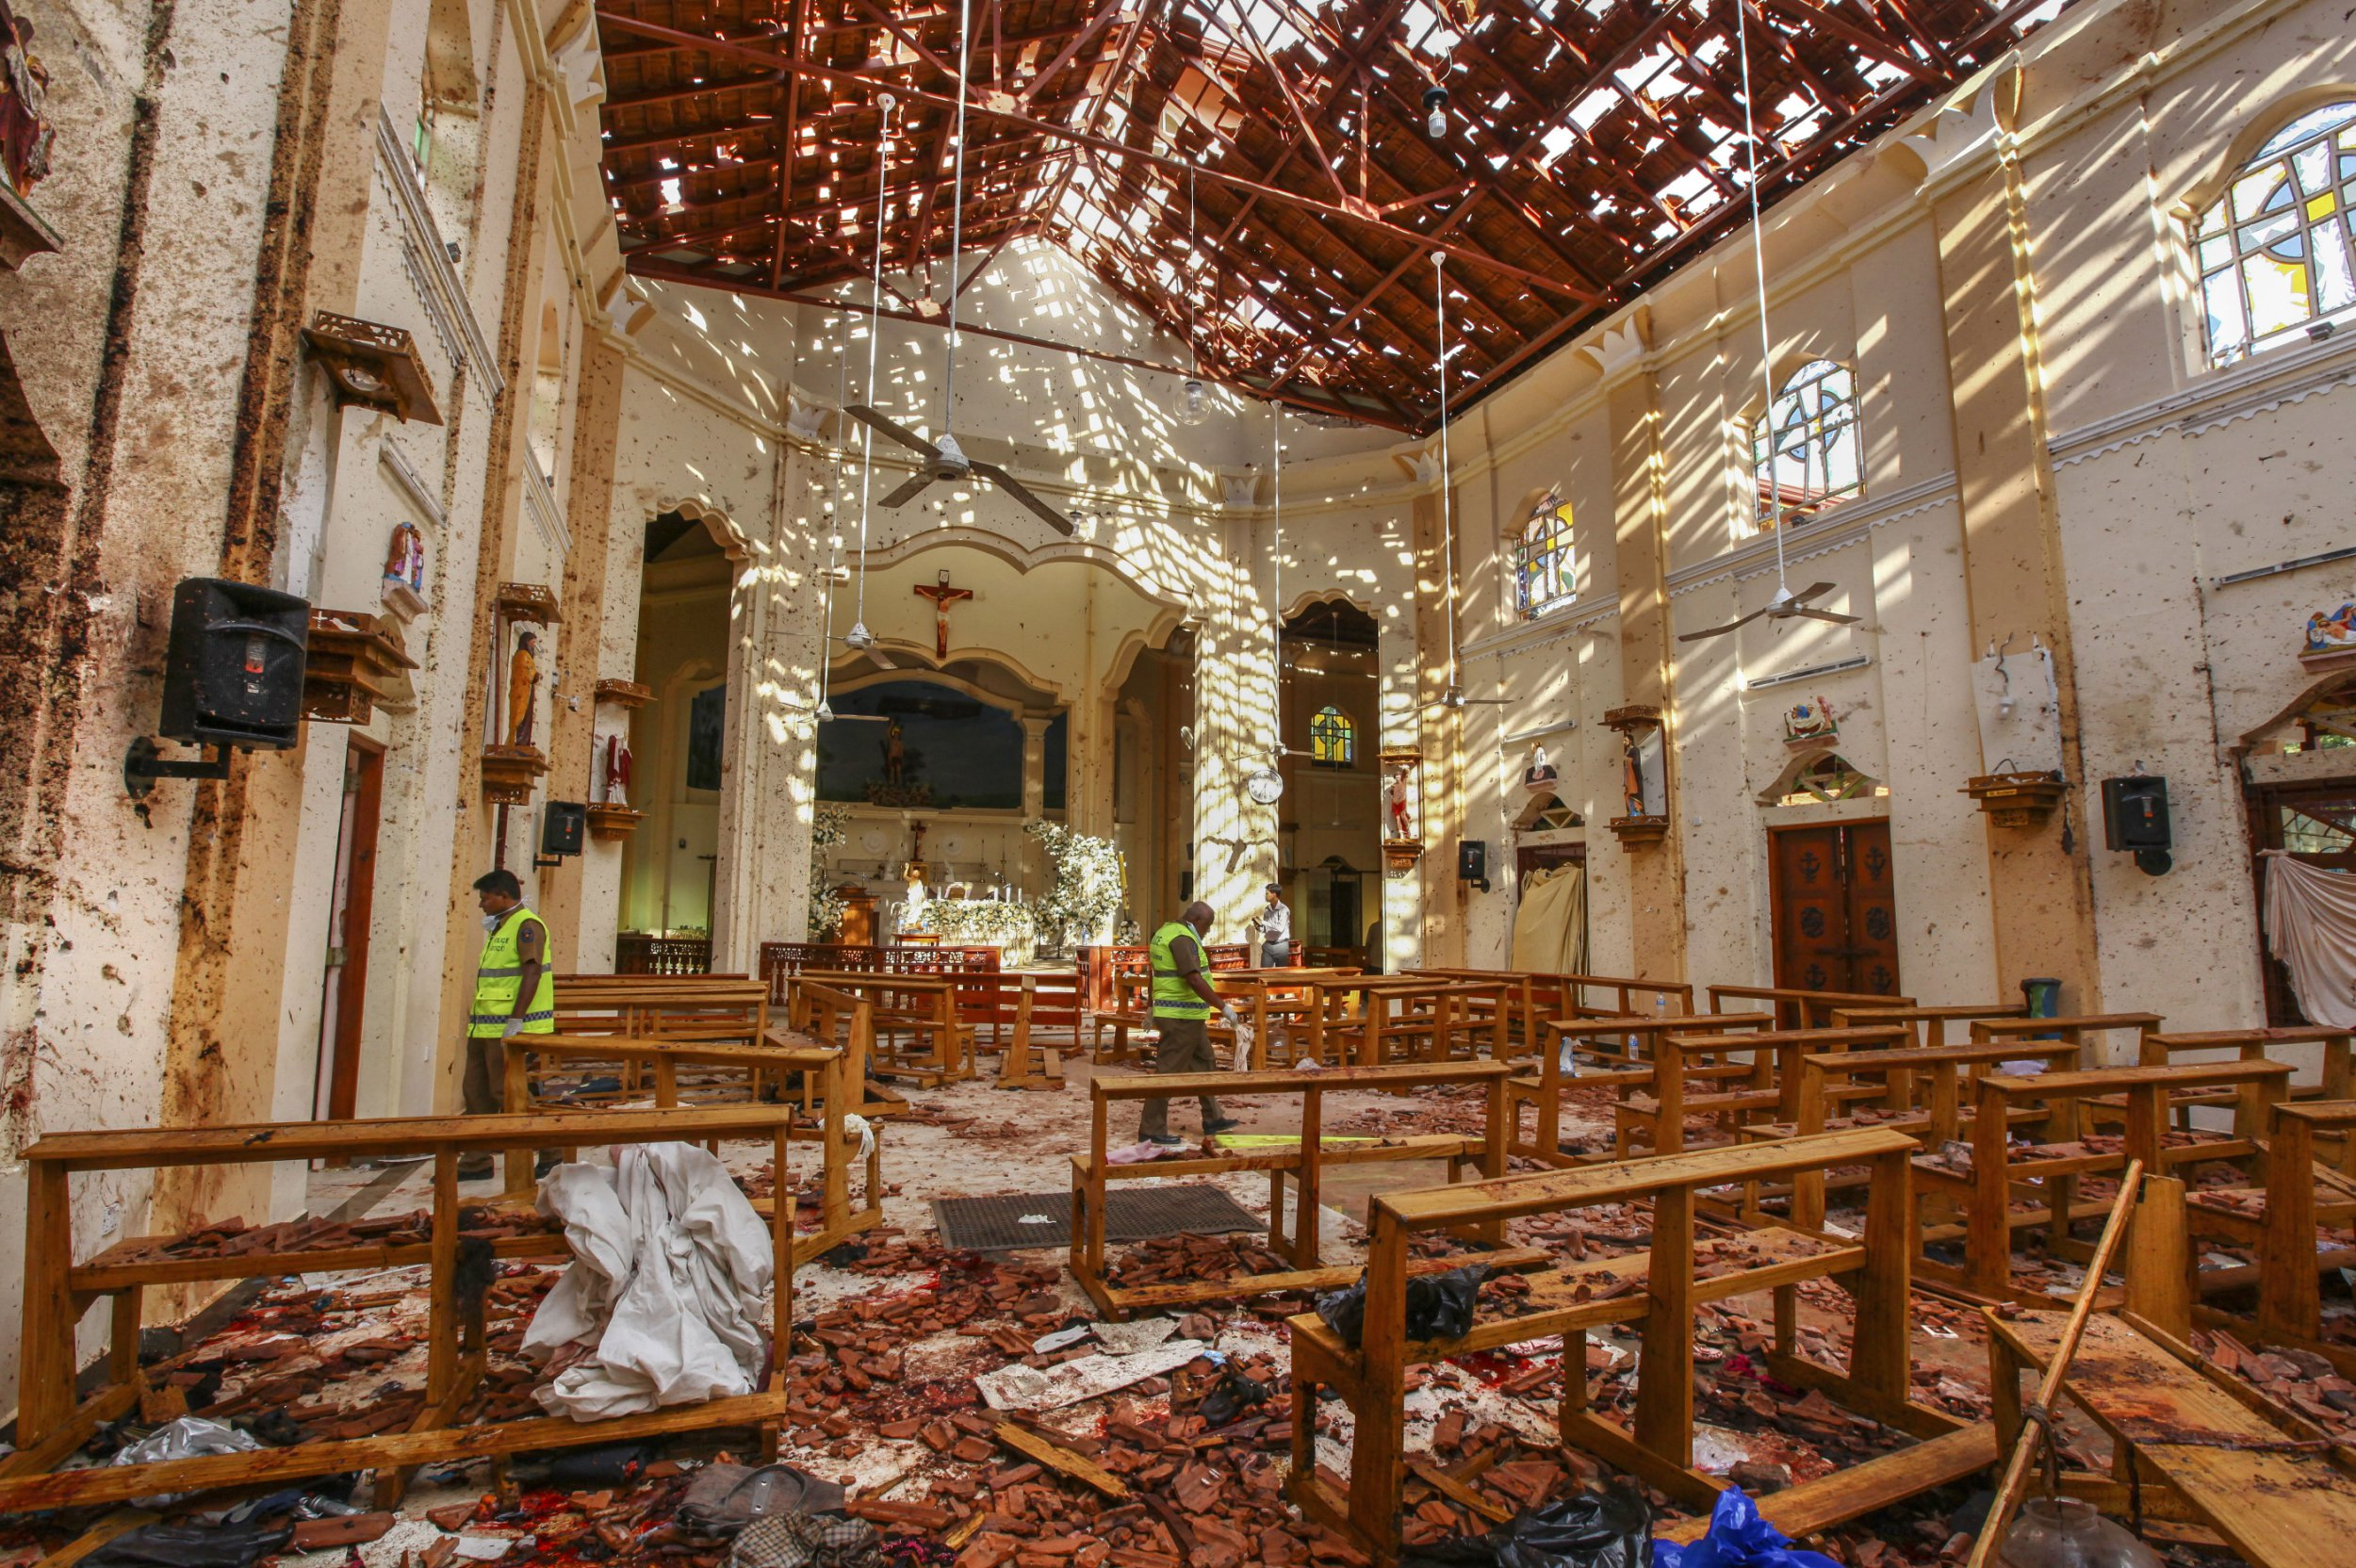 Sri Lanka suicide bomb attacks was 'revenge for Christchurch'